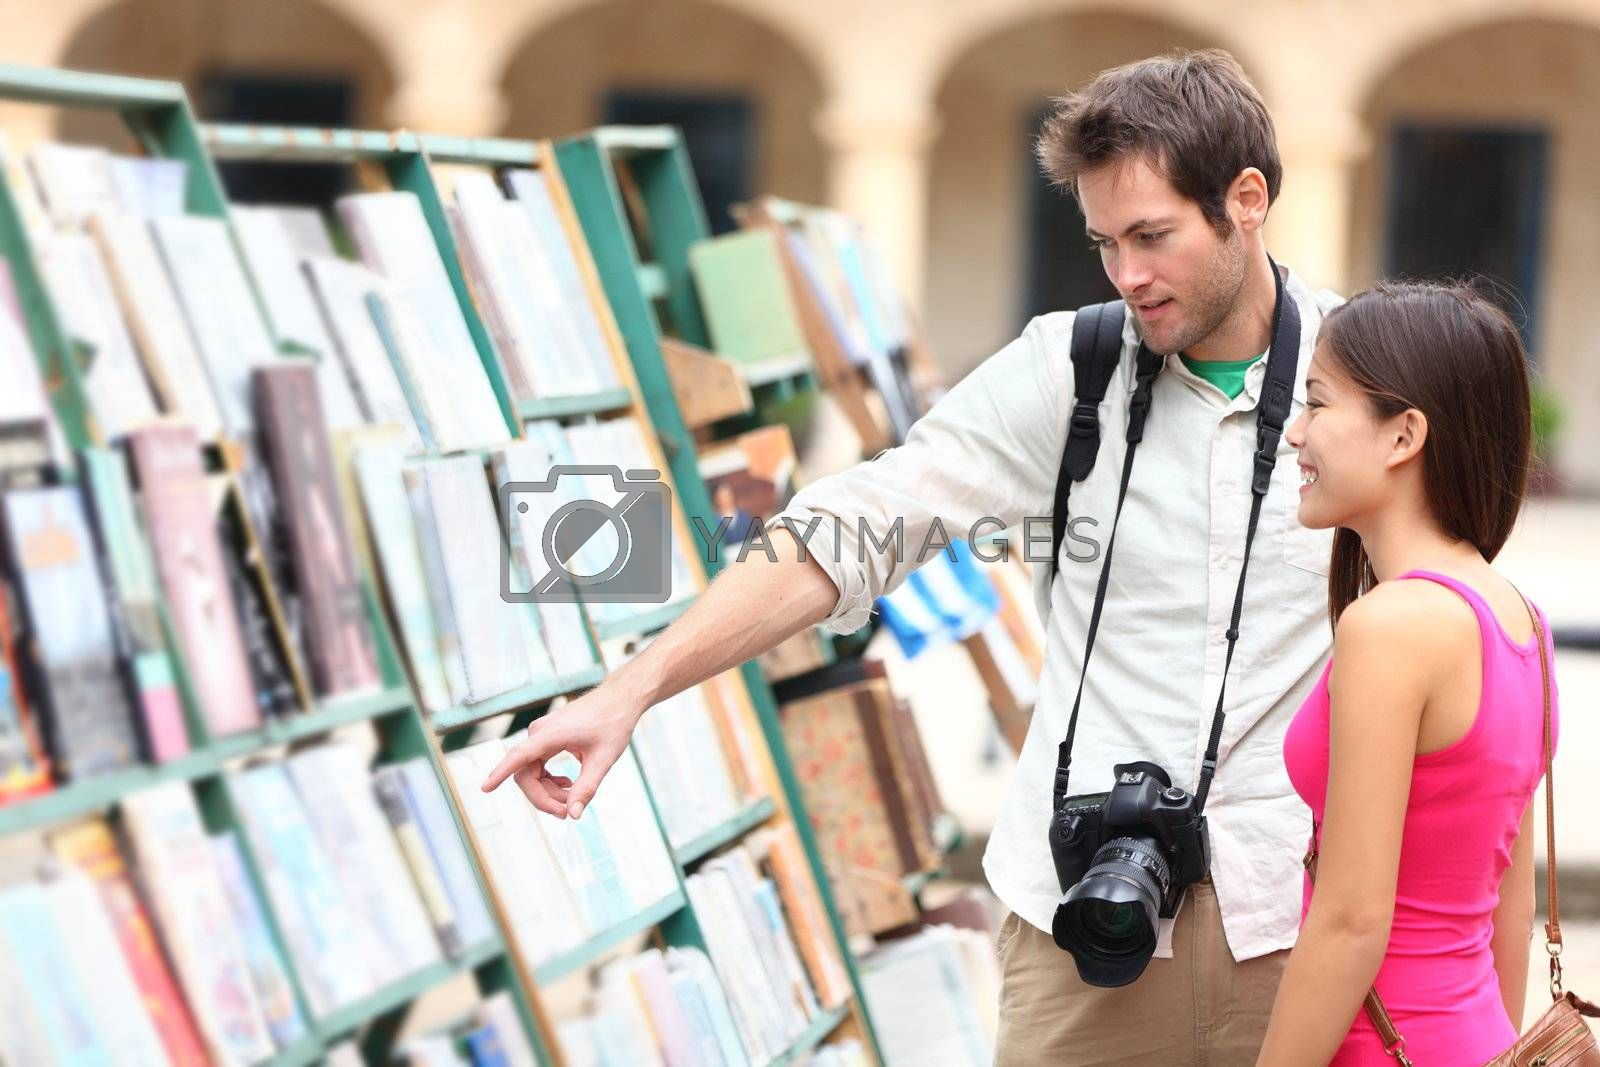 Tourist couple in Havana, Cuba looking at books together having fun on vacation travel on Plaza de Armas in Old Havana. Young travelers interracial couple, Asian woman, Caucasian man.